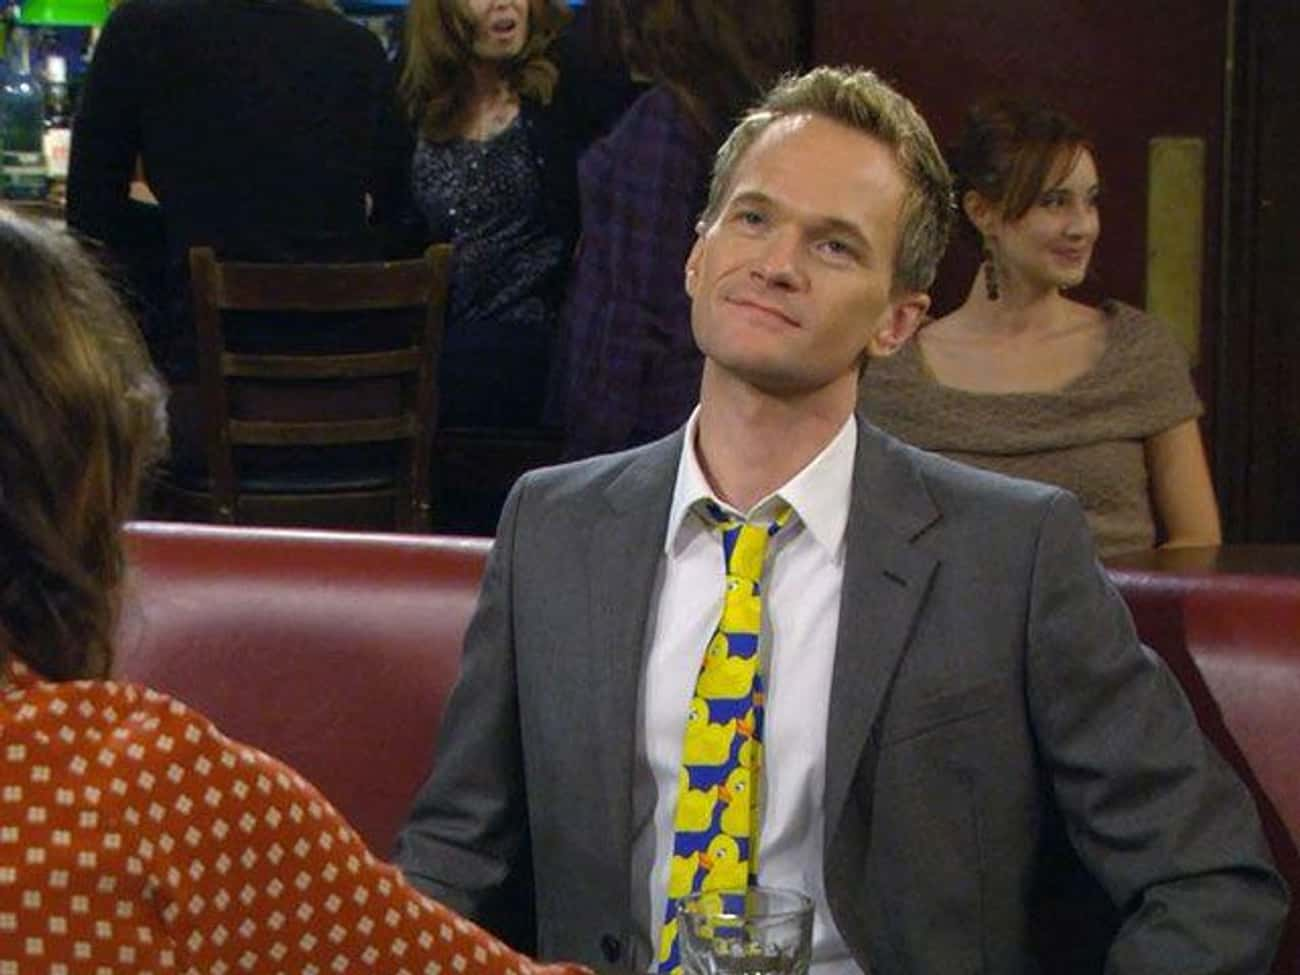 Barney Isn't Really A Woma is listed (or ranked) 3 on the list Legendary 'How I Met Your Mother' Fan Theories